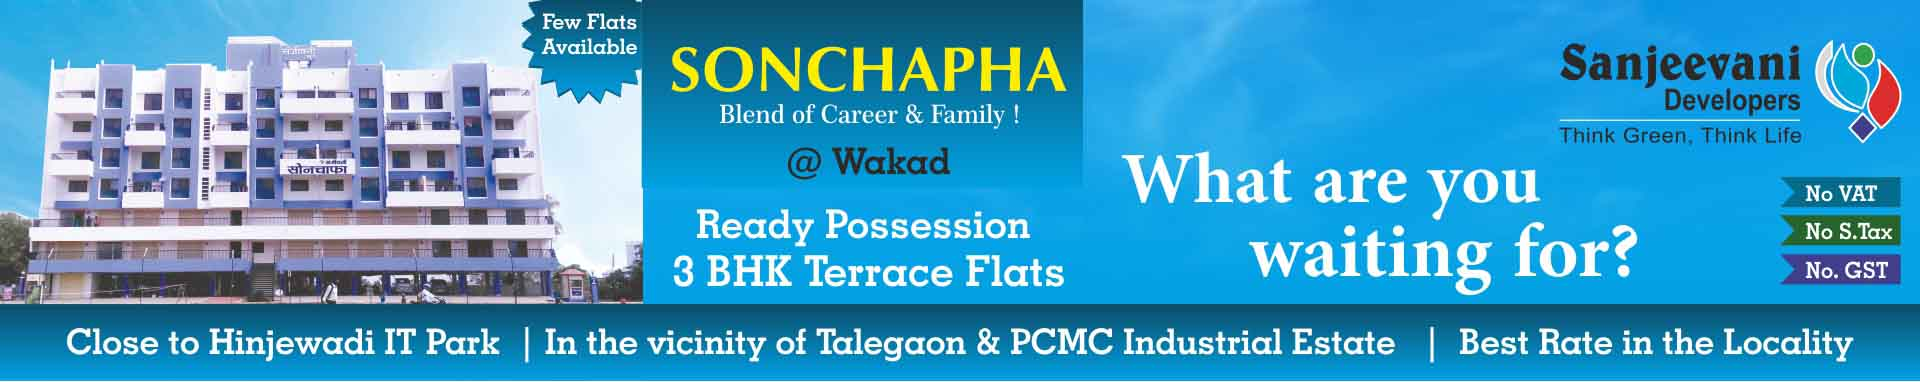 sonchapha-sanjeevani-developers-3-bh-ready-possession-wakad-pune-inside-page-banner